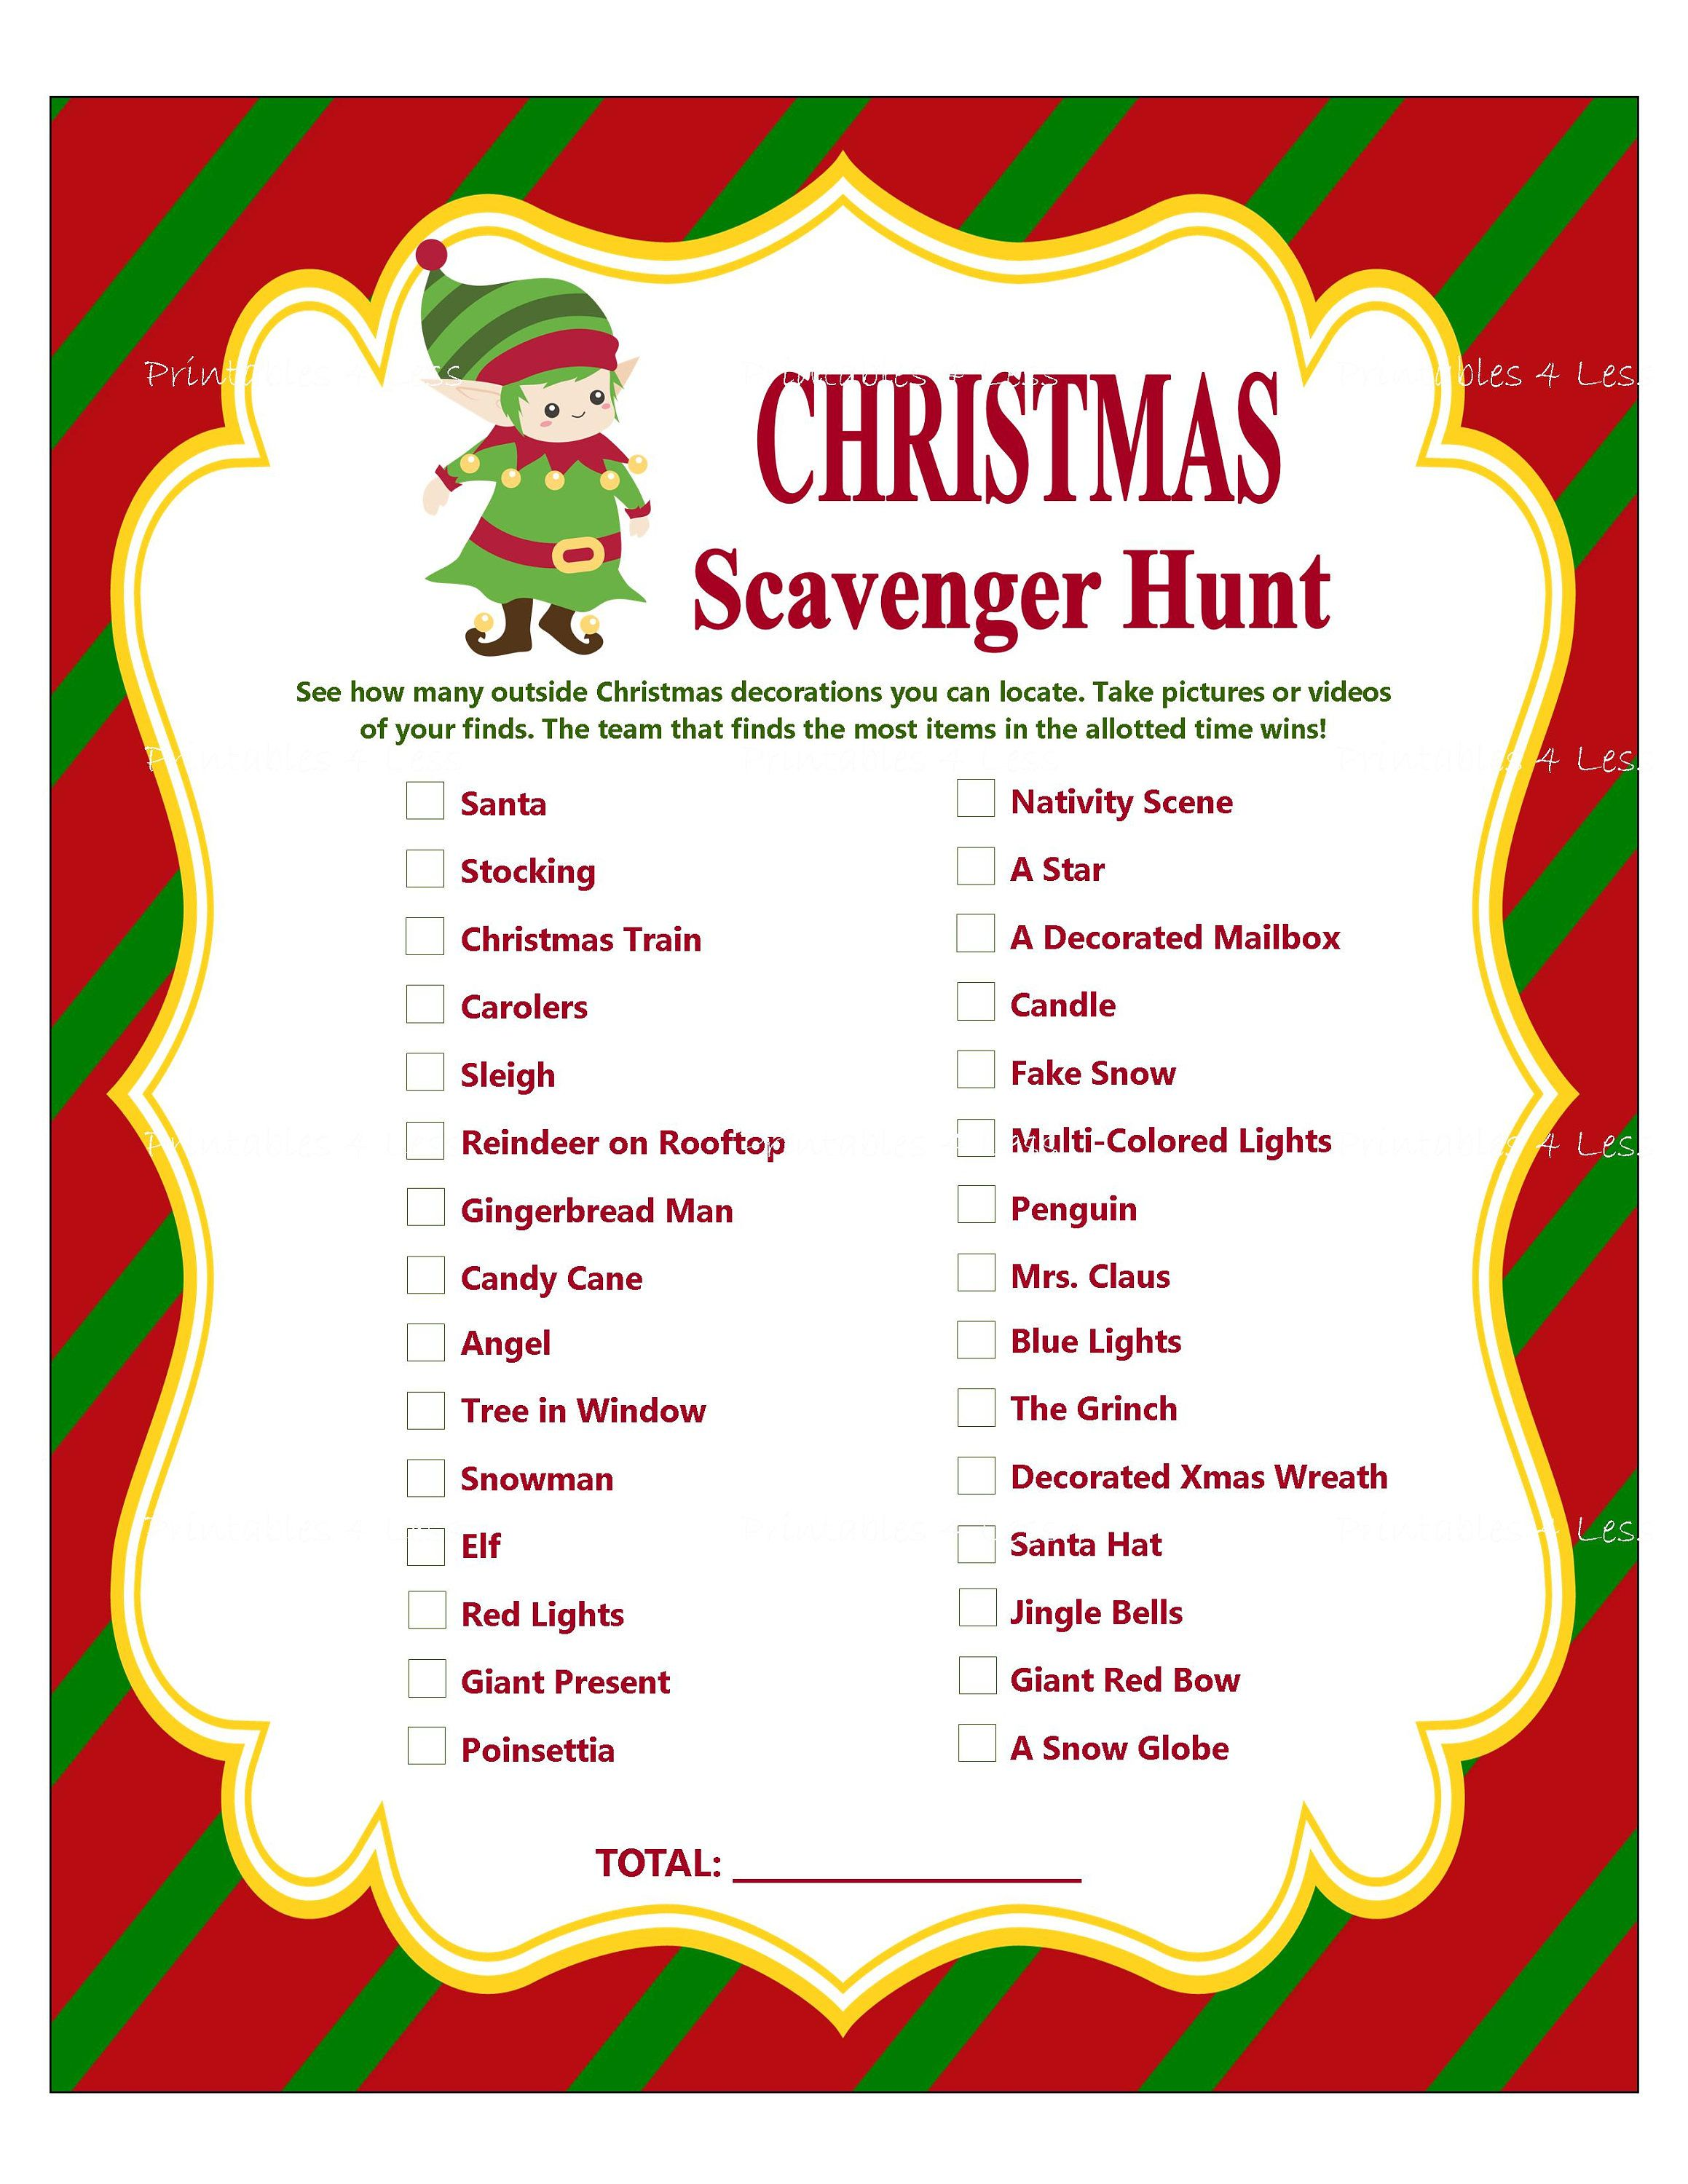 Christmas Scavenger Hunt, Printable Christmas Party Game